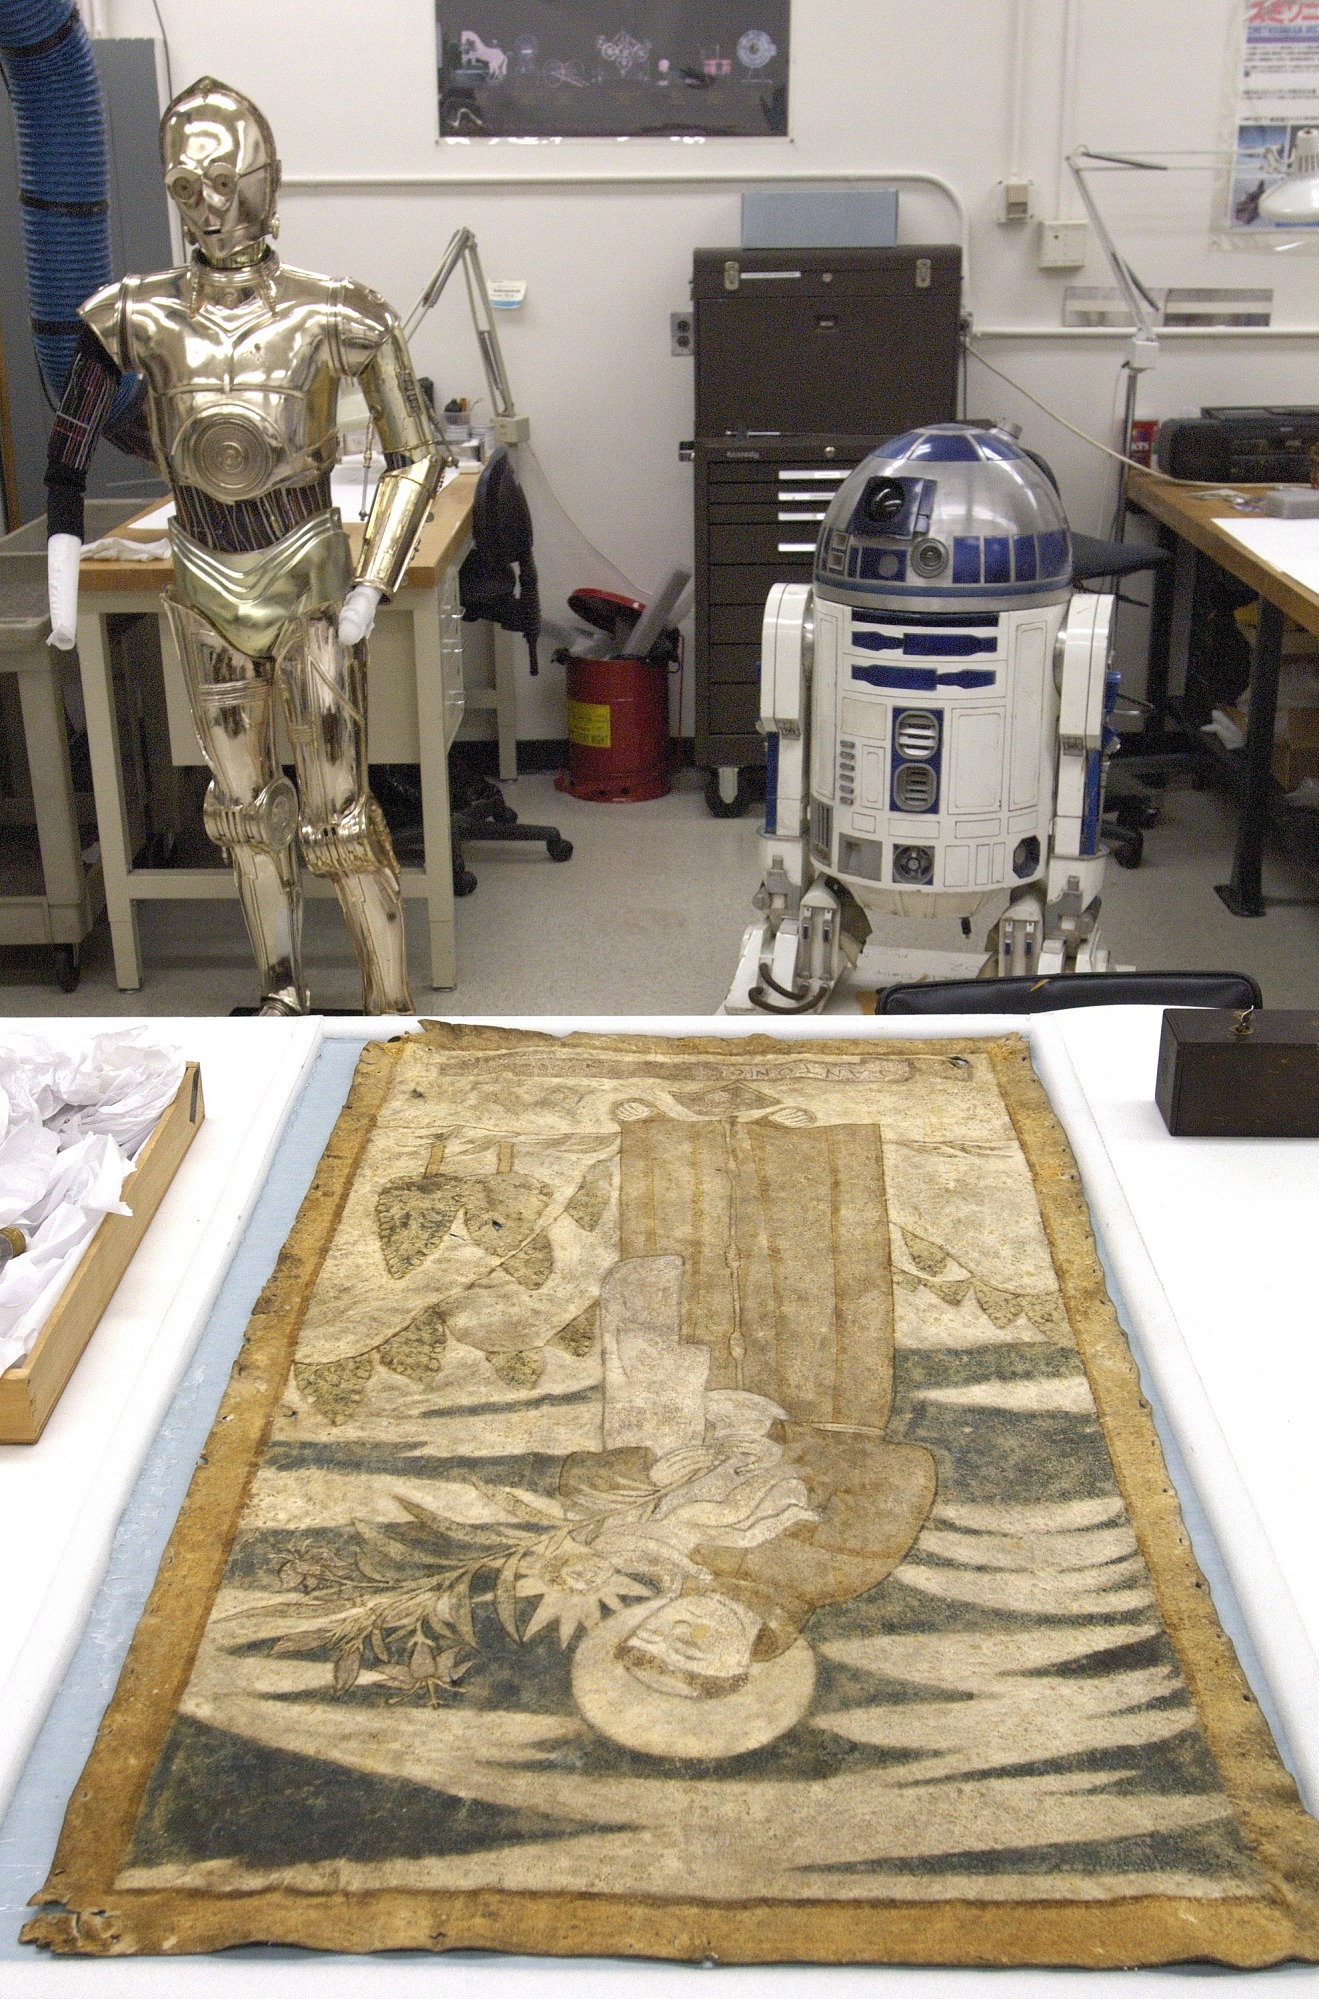 Sep 5 C-3PO and R2-D2, NMAH Iconic Collections on View